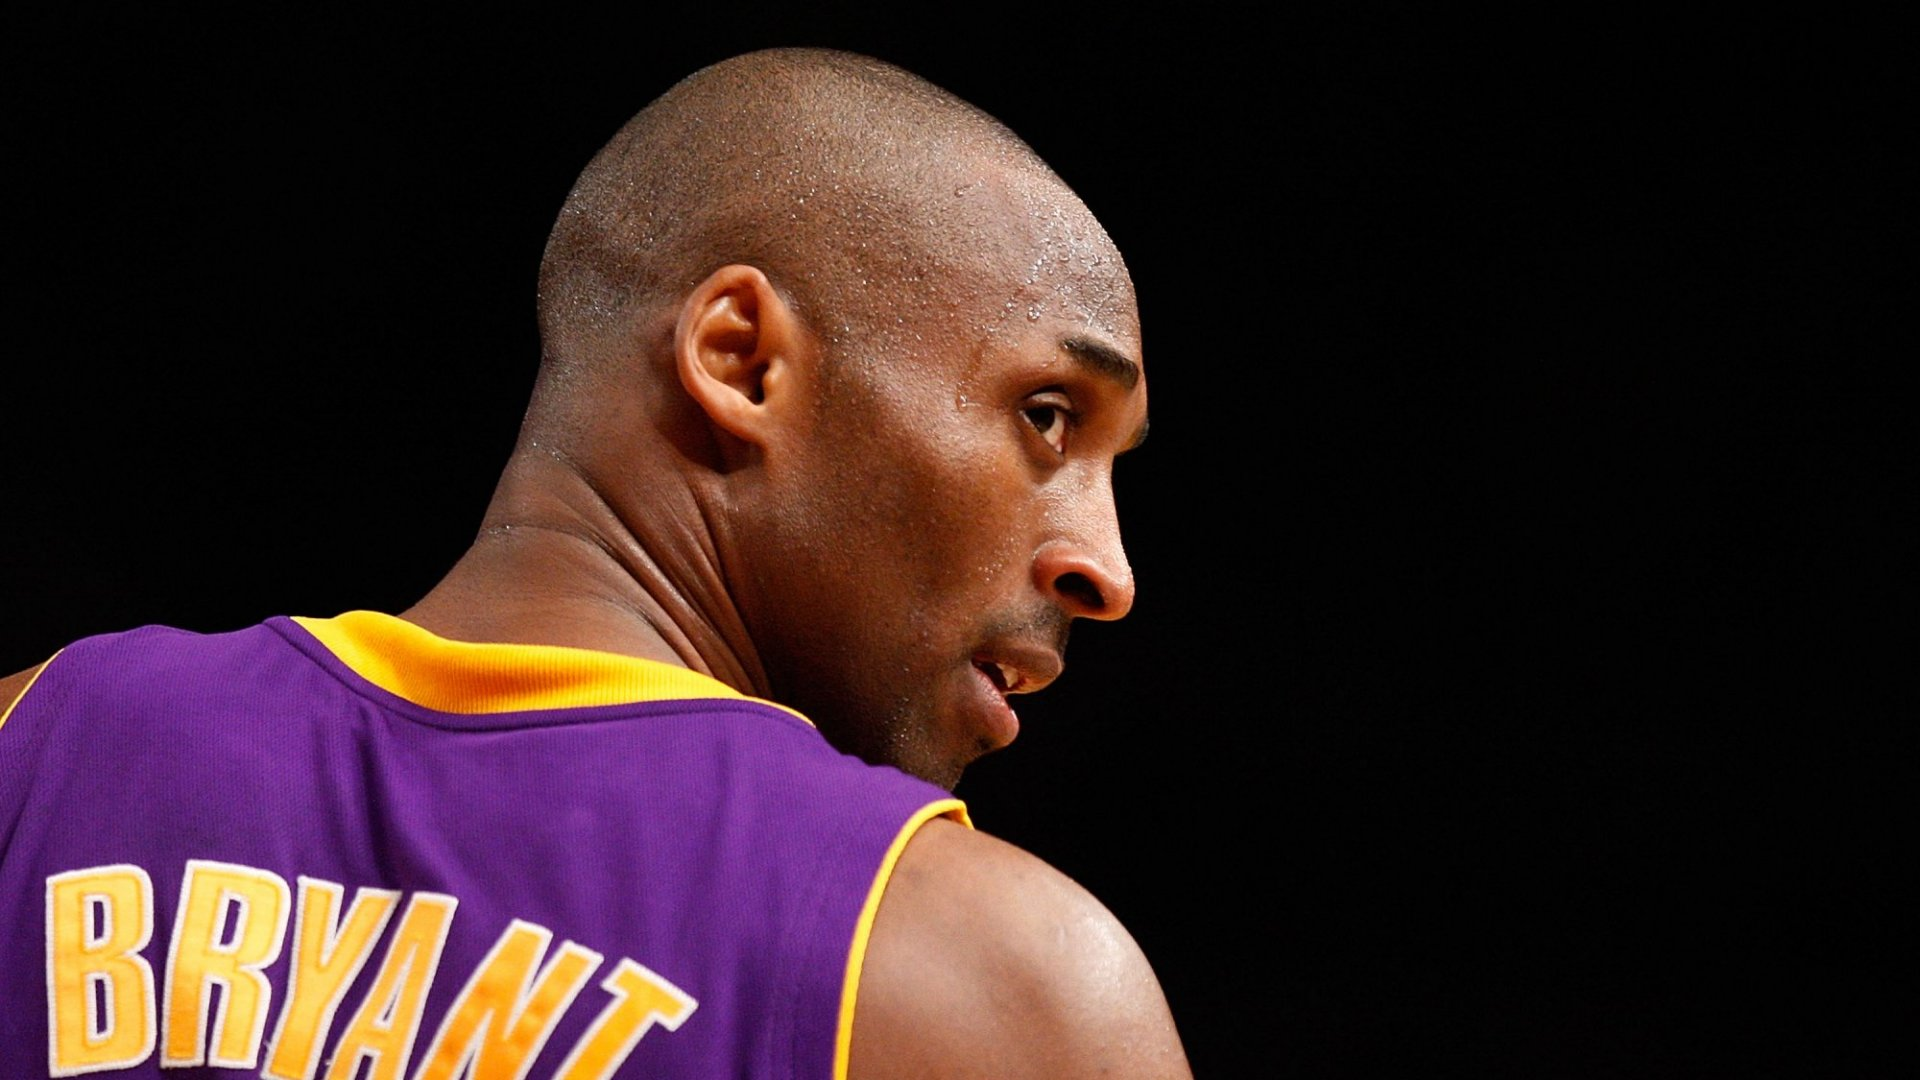 This Is How You Achieve Greatness. 5 Essential Lessons From Kobe Bryant